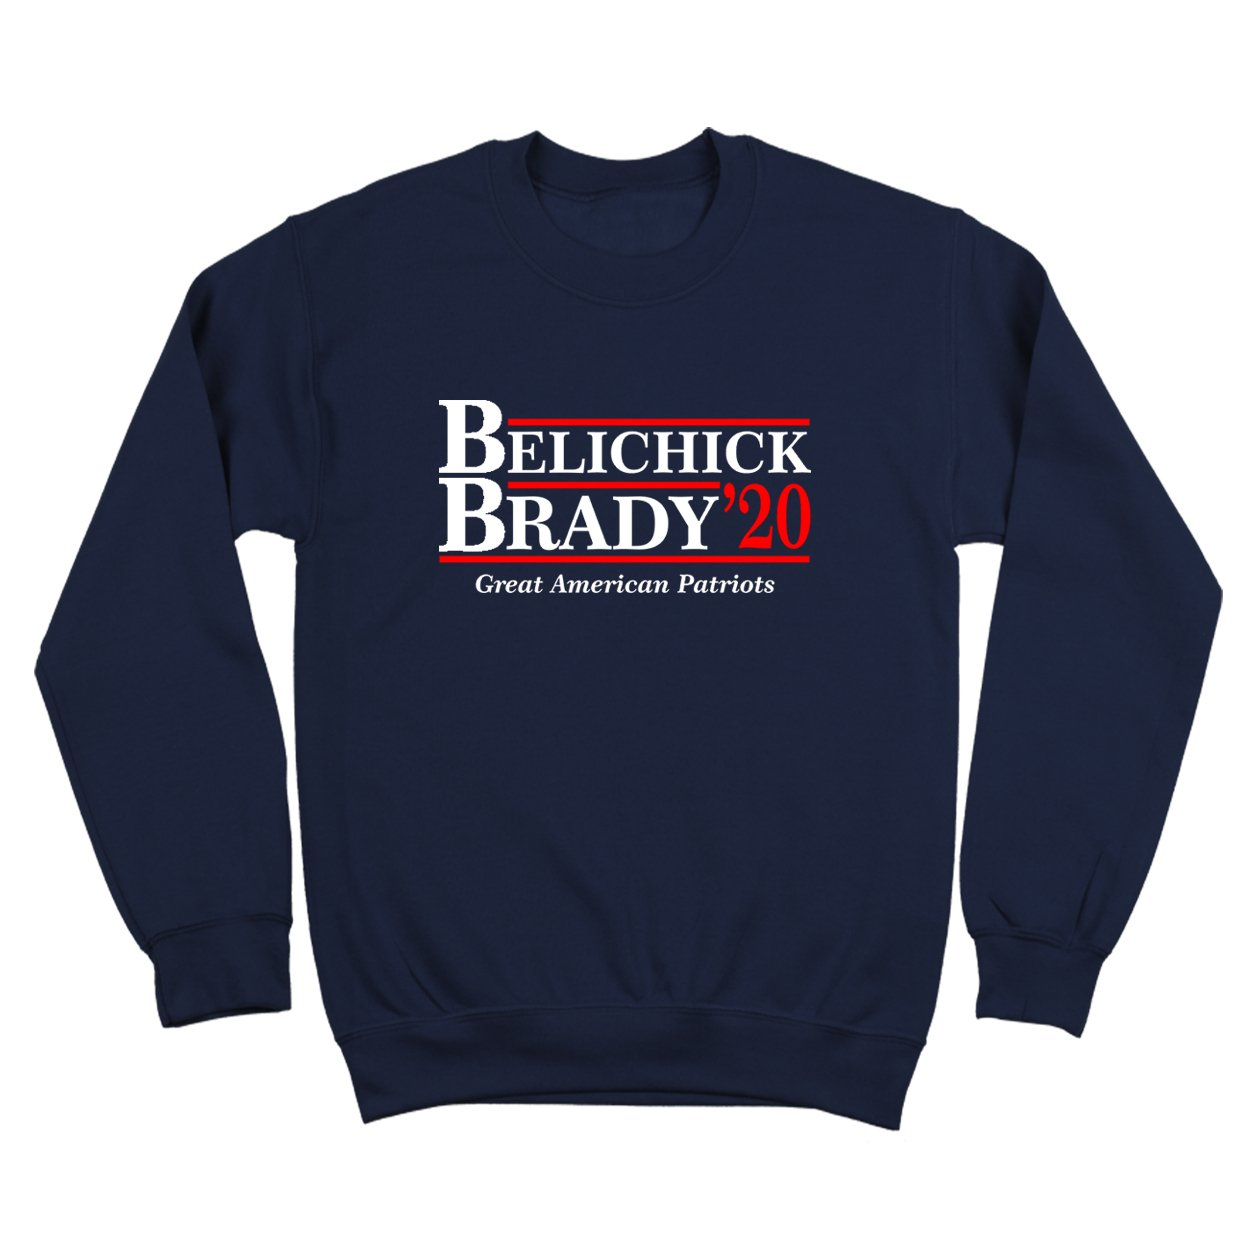 Brady Belichick 2020 Presidential Election Great American New England Patriots Mens Sweatshirt